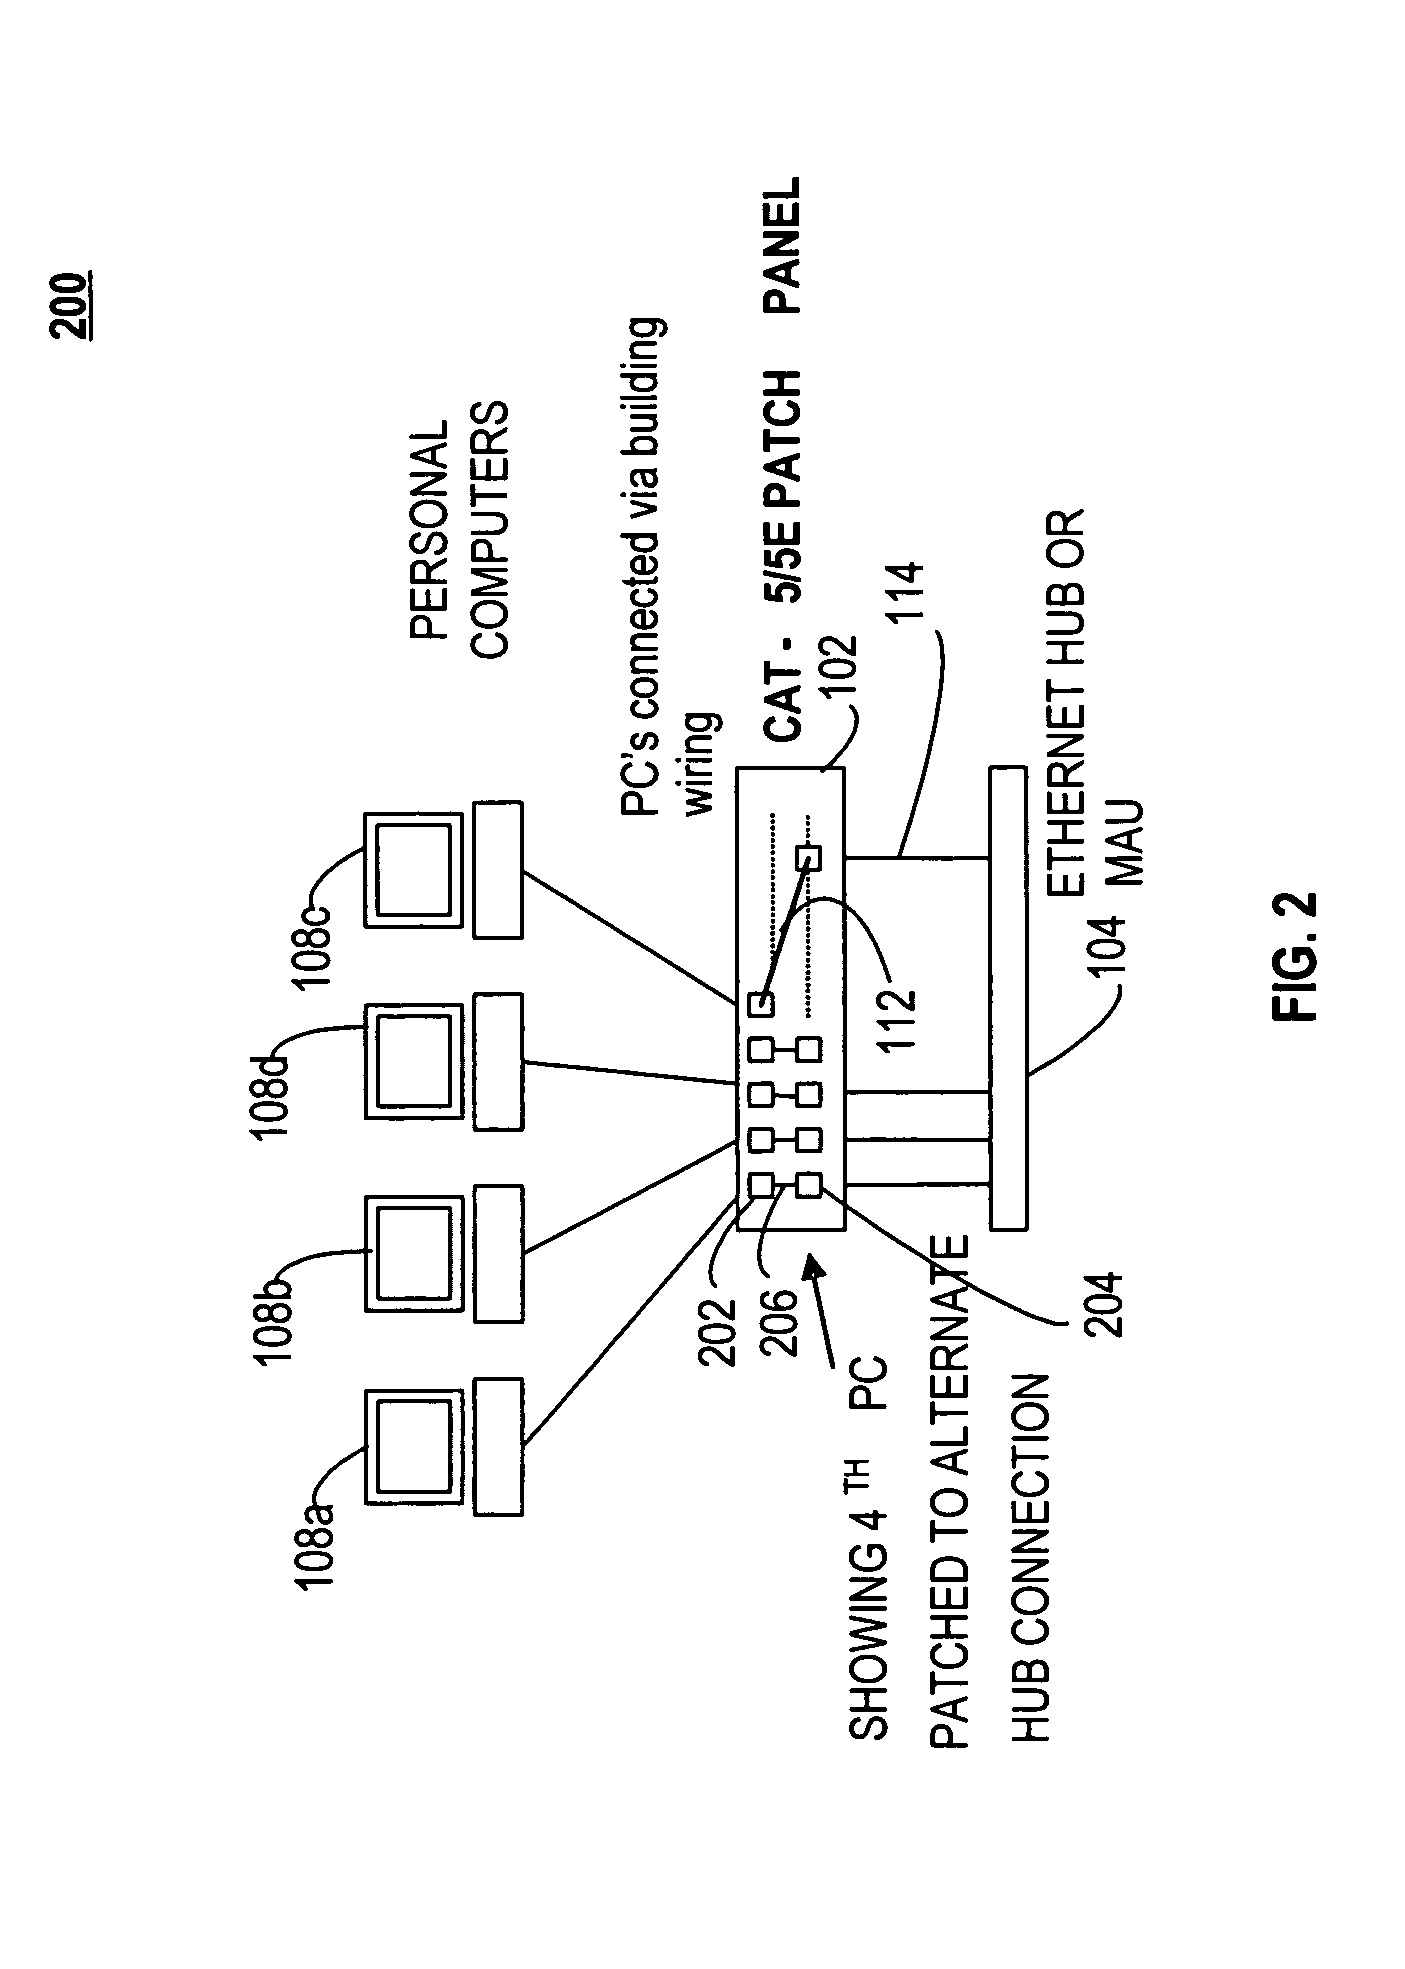 patent us8014518 - patch panel apparatus and system including patch cord path tracing